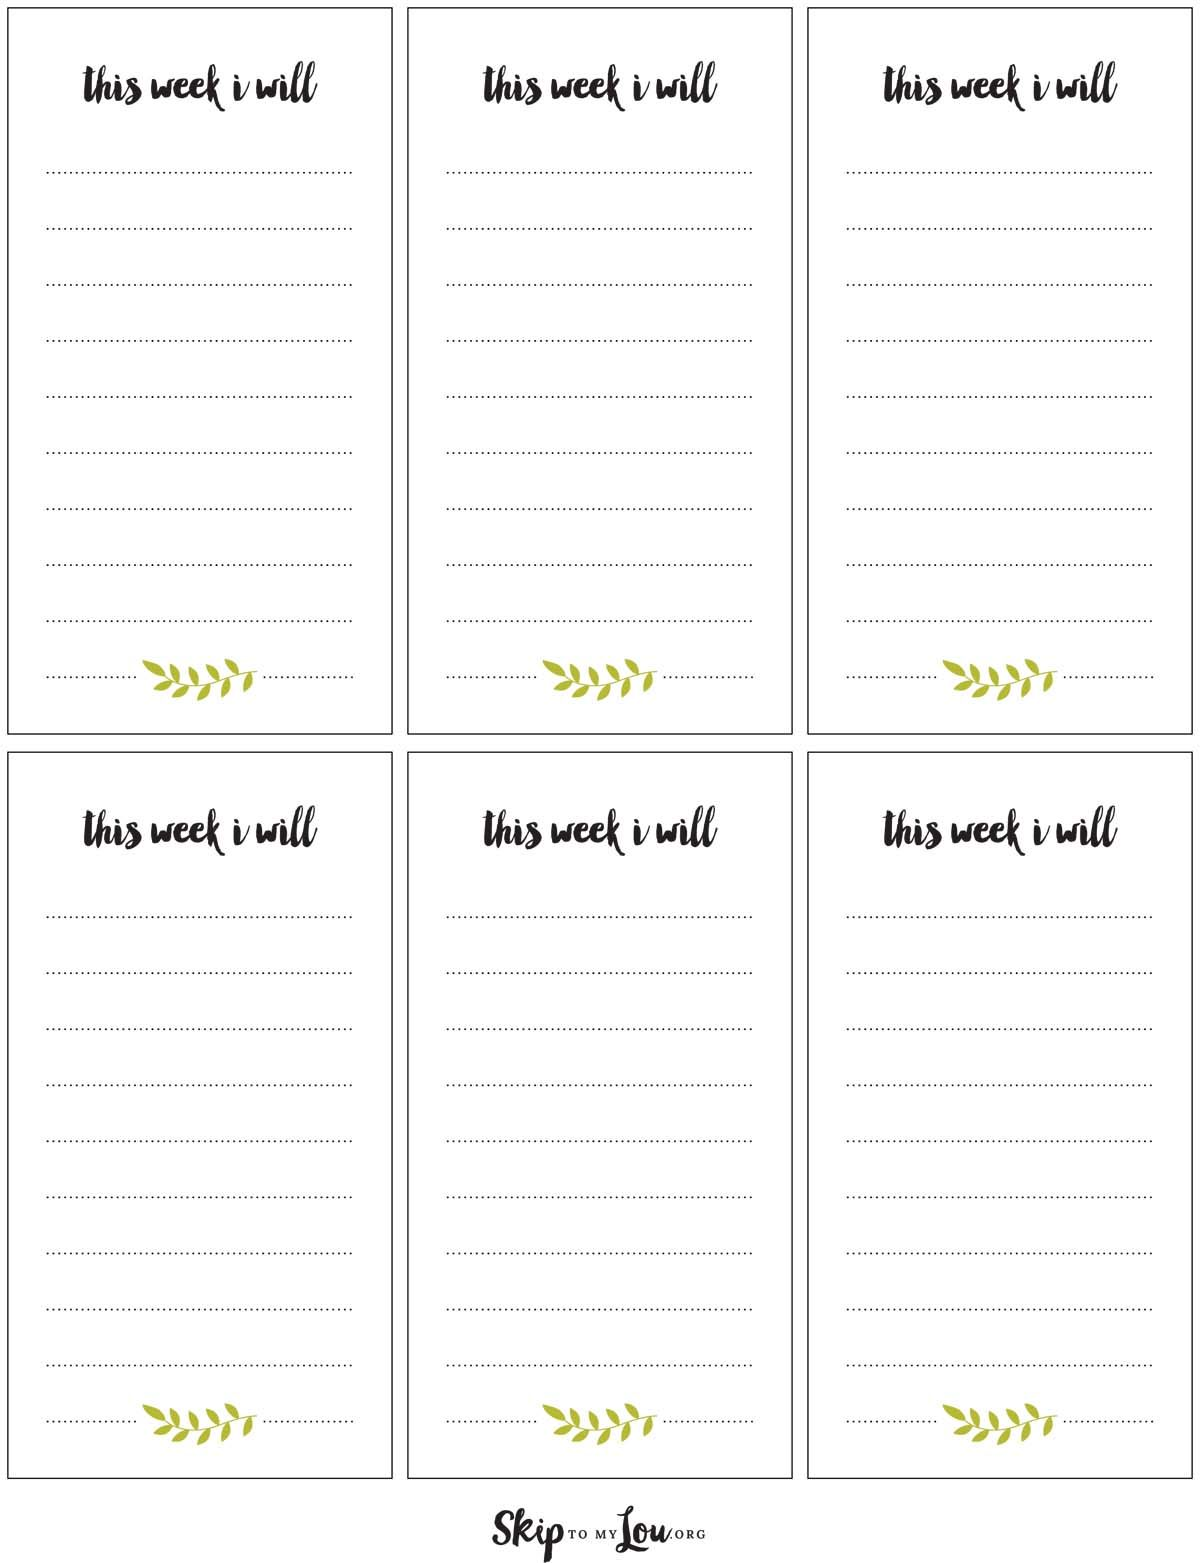 Make It Happen Free Goal Planning Worksheets Free Goal Setting Worksheet Goal Setting Worksheet Goals Worksheet